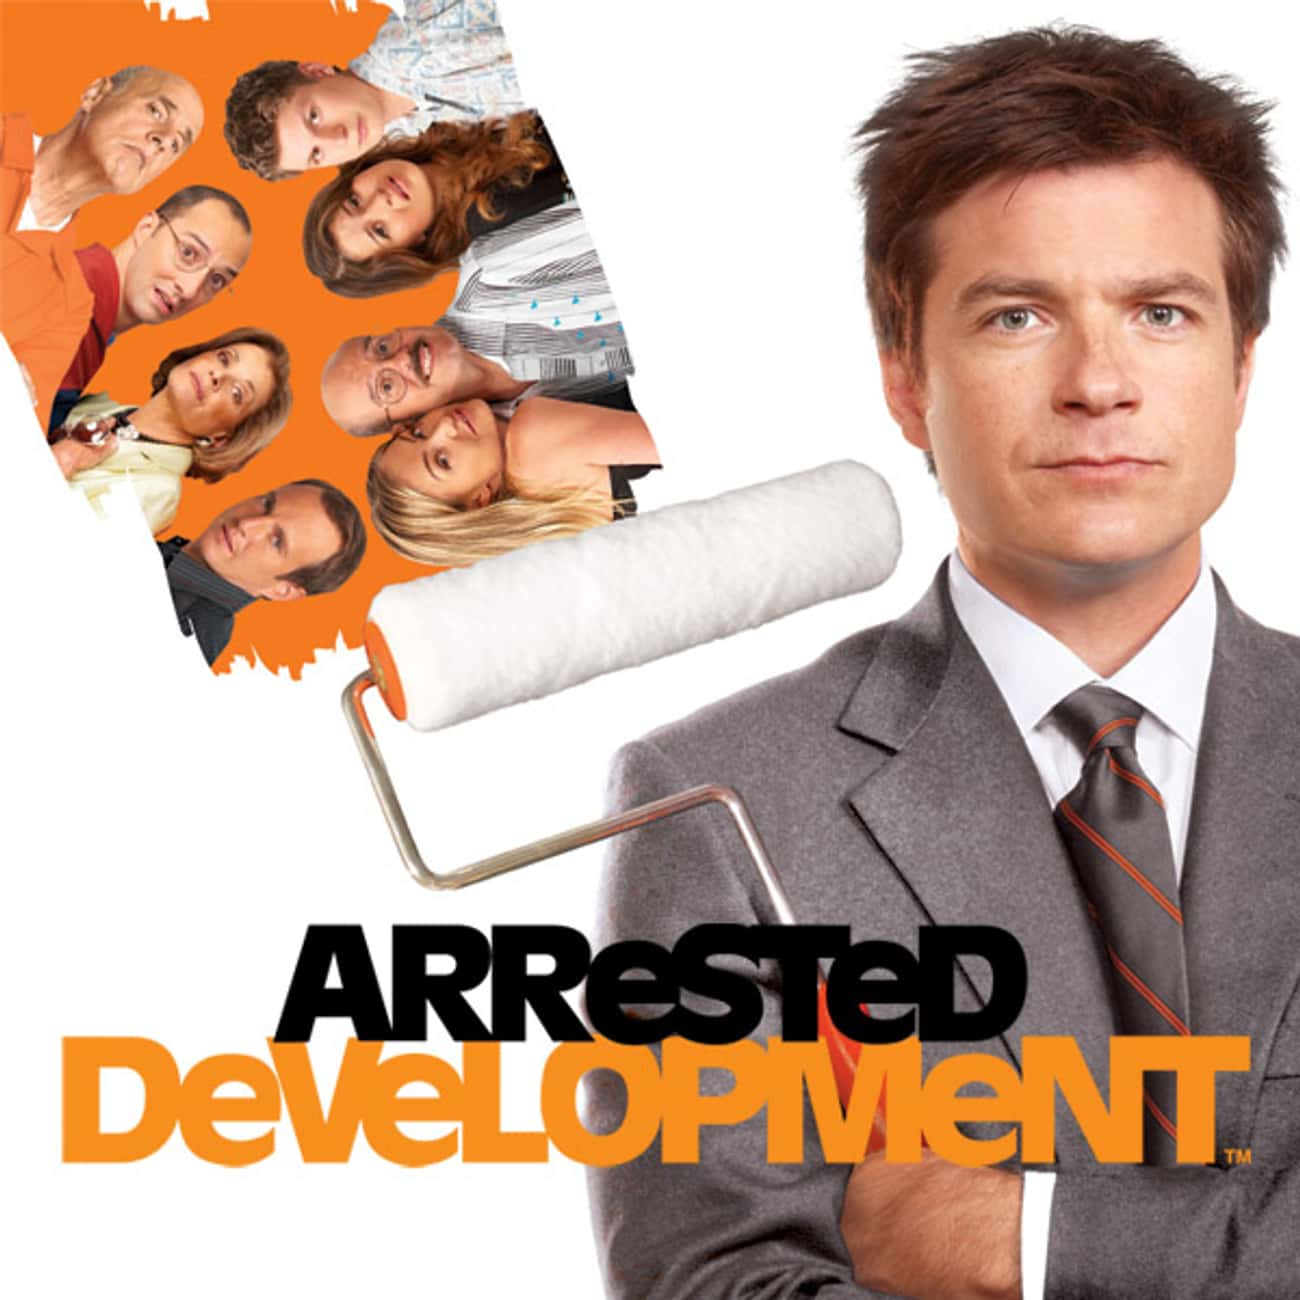 Arrested Development is listed (or ranked) 1 on the list What To Watch If You Love 'Community'